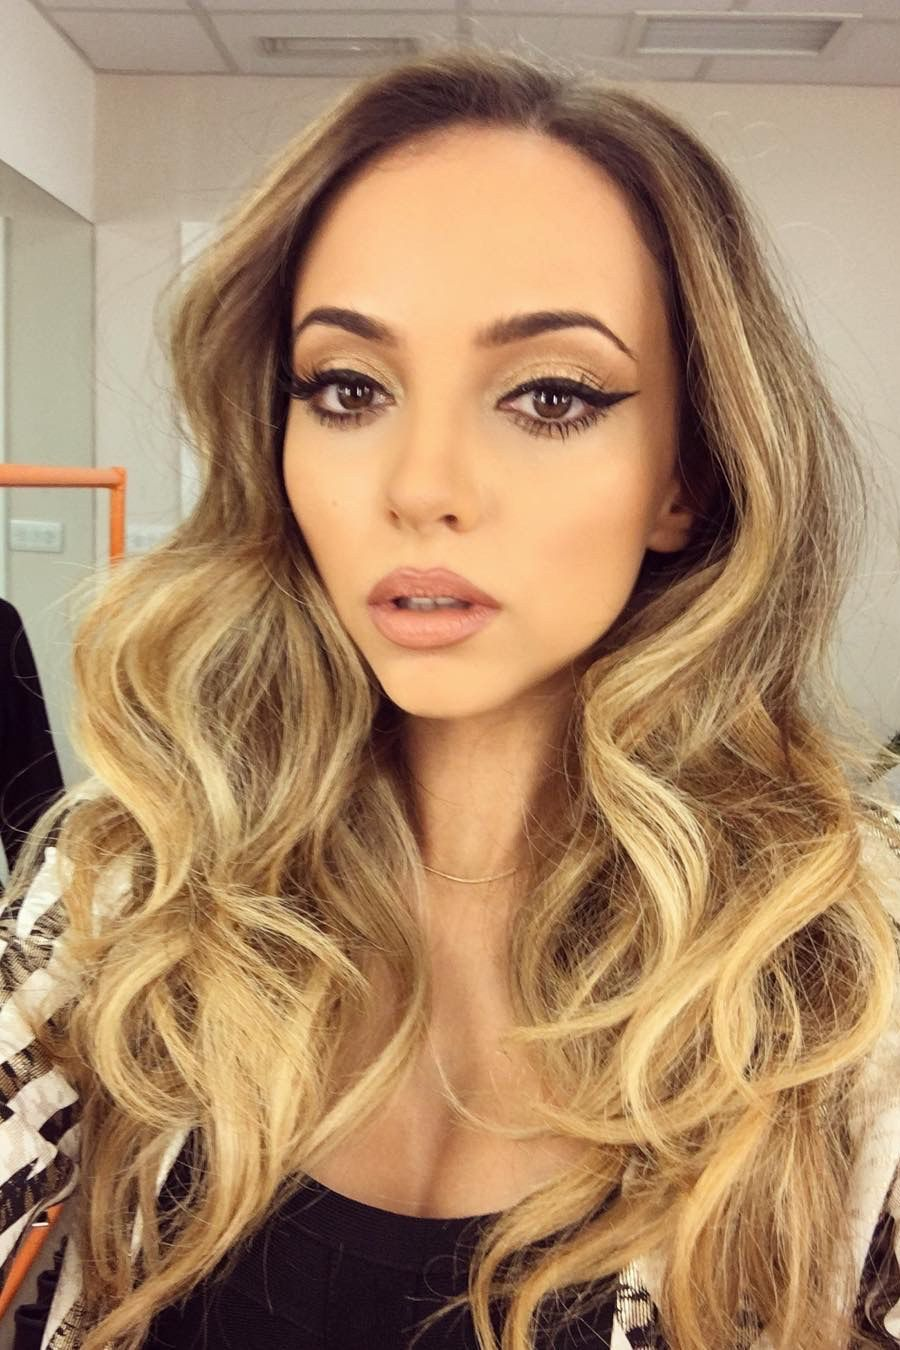 Watch Jade thirlwall sexy 27 Photos video